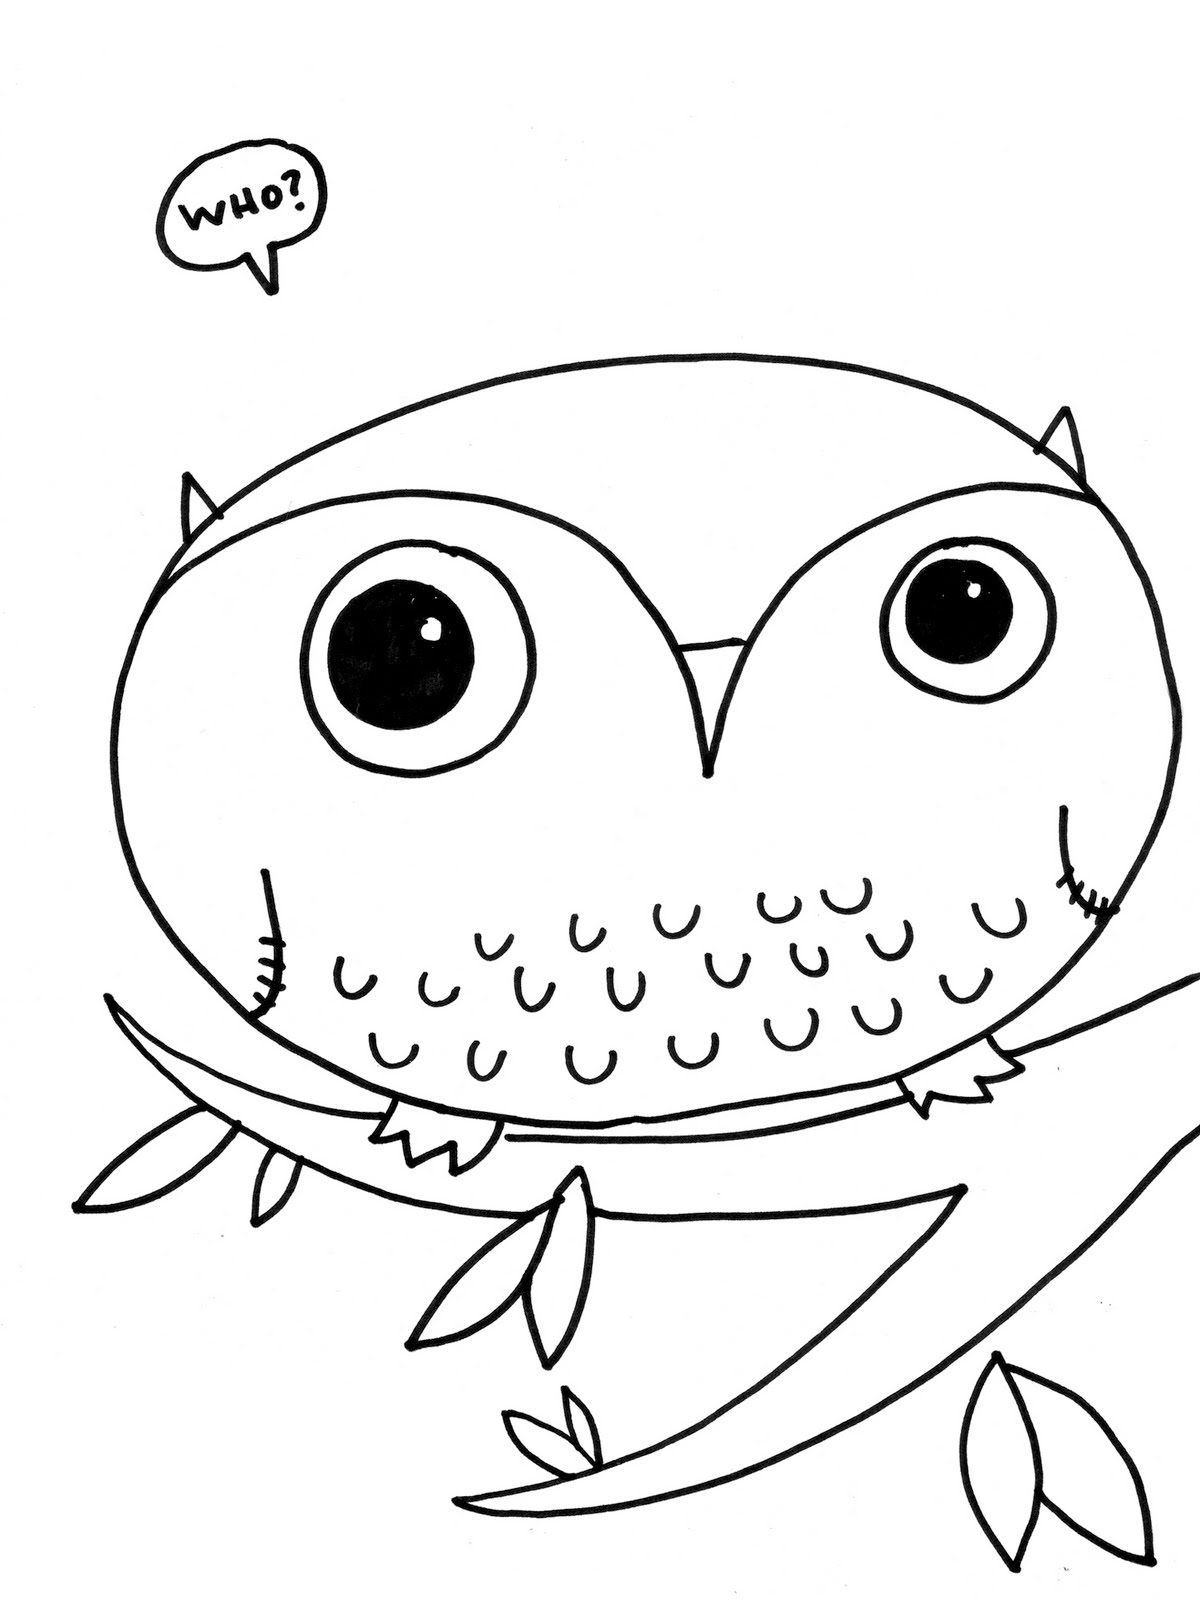 Free Printable Owl Coloring Pages For Kids Free Coloring Pages For Printable